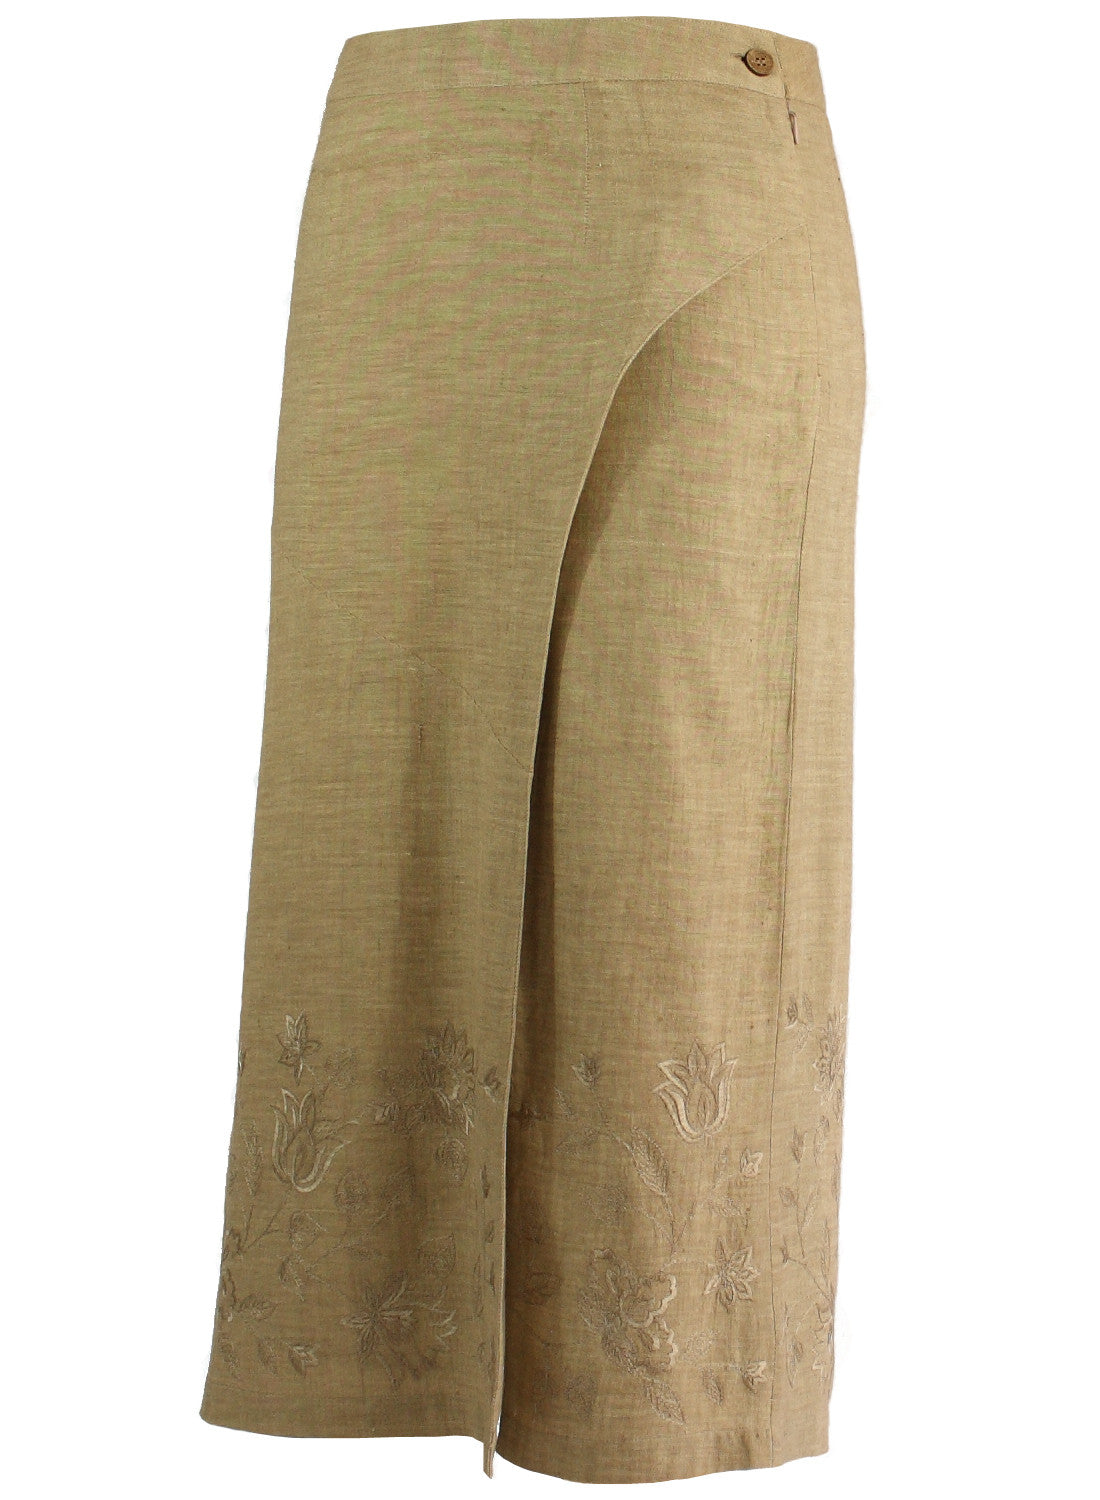 3/4 length Skirt in beige khadi with self floral Embroidery - MINC ecofashion